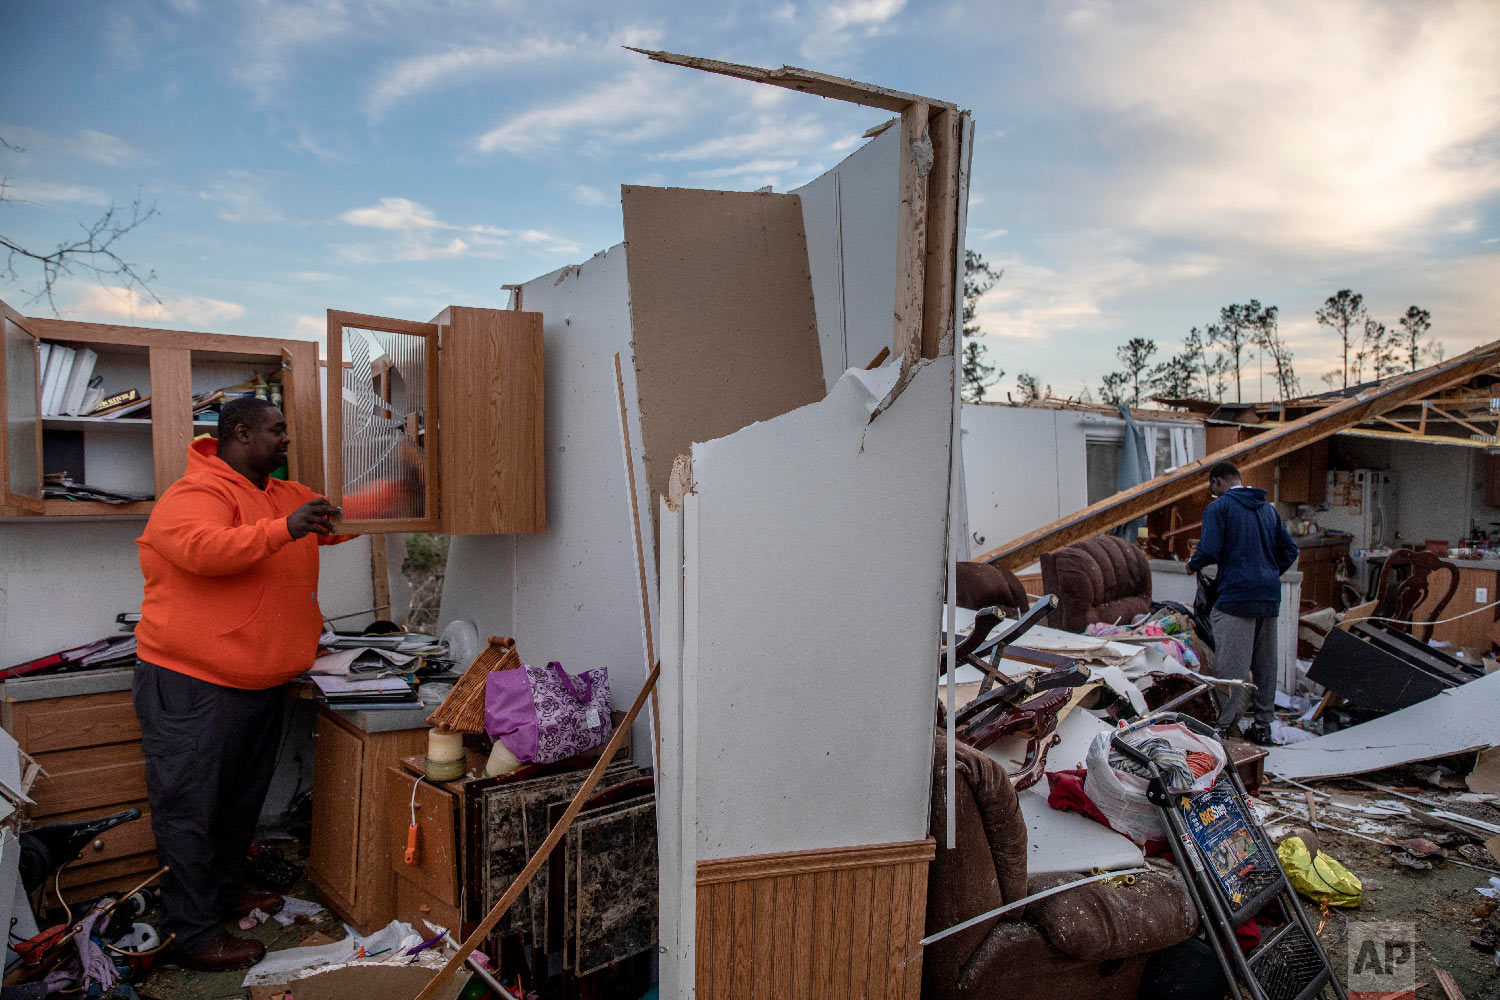 Granadas Baker, left, and son Granadas Jr. 18, right, retrieve personal items from the damaged home where they survived a tornado a day earlier in Beauregard, Ala., March 4, 2019. (AP Photo/David Goldman)